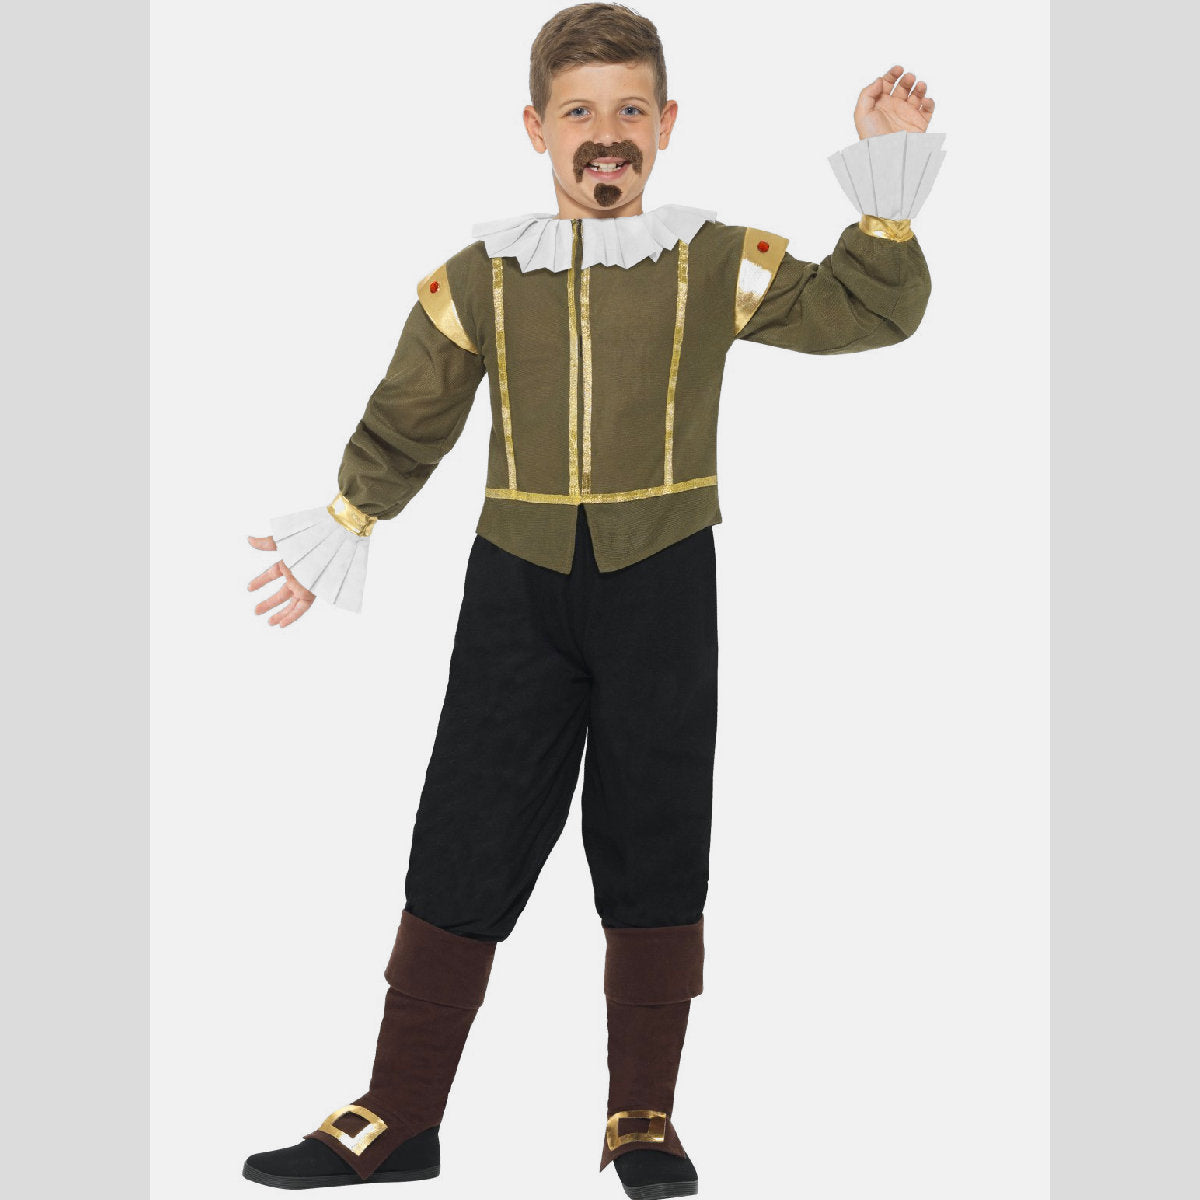 Shakespeare Boys Fancy Dress Costume with Moustache and Goatee